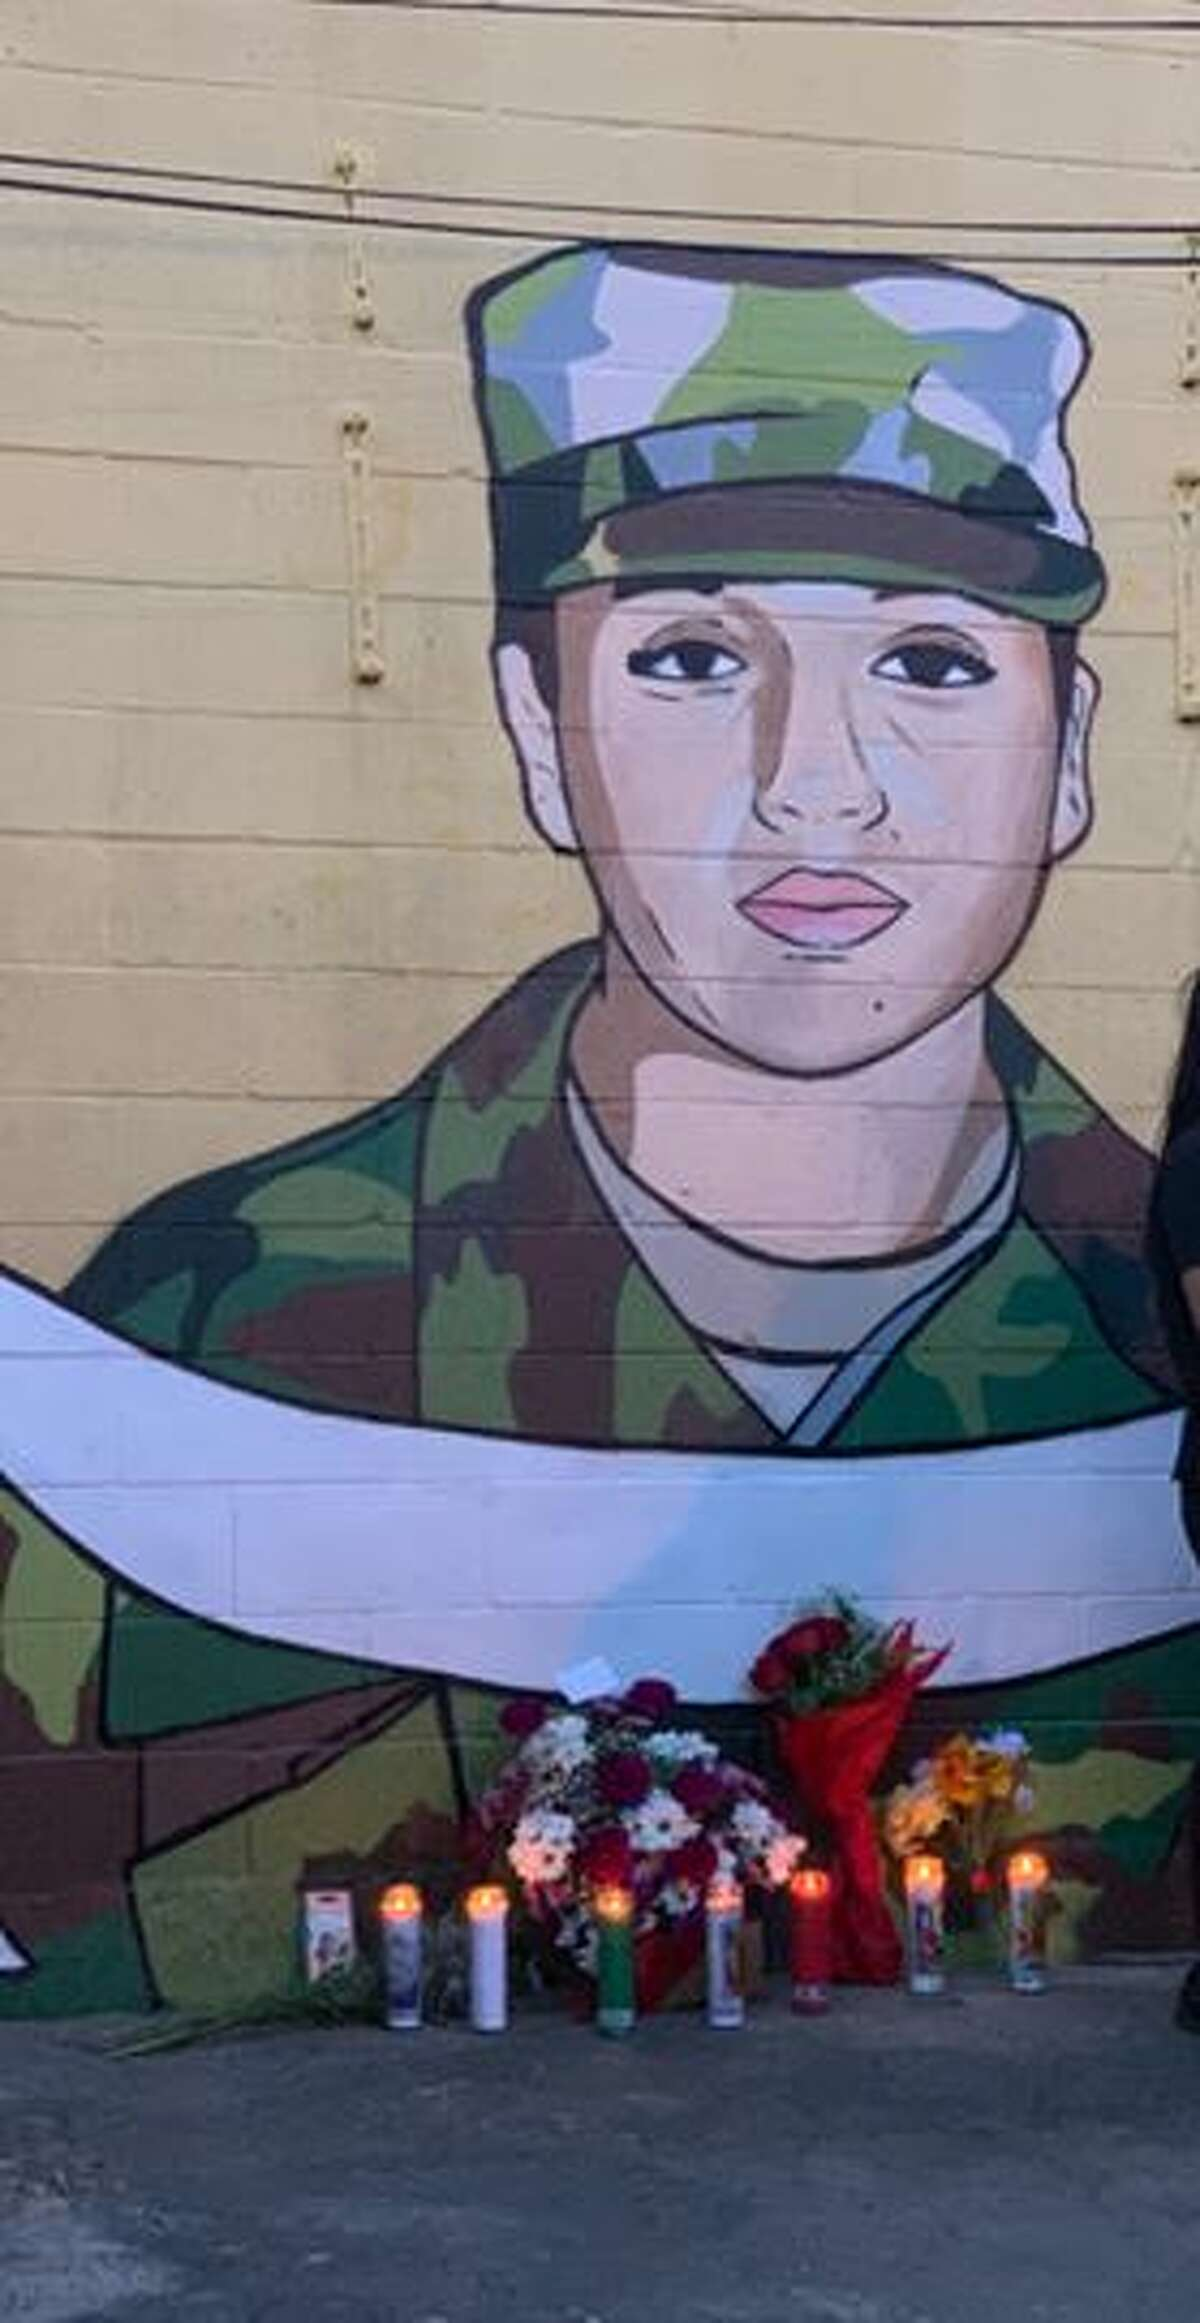 Crowds gathered around the finished mural at Taqueria del Sol holding a candlelight vigil in honor of Pfc. Vanessa Guillen on Wednesday,July 1.